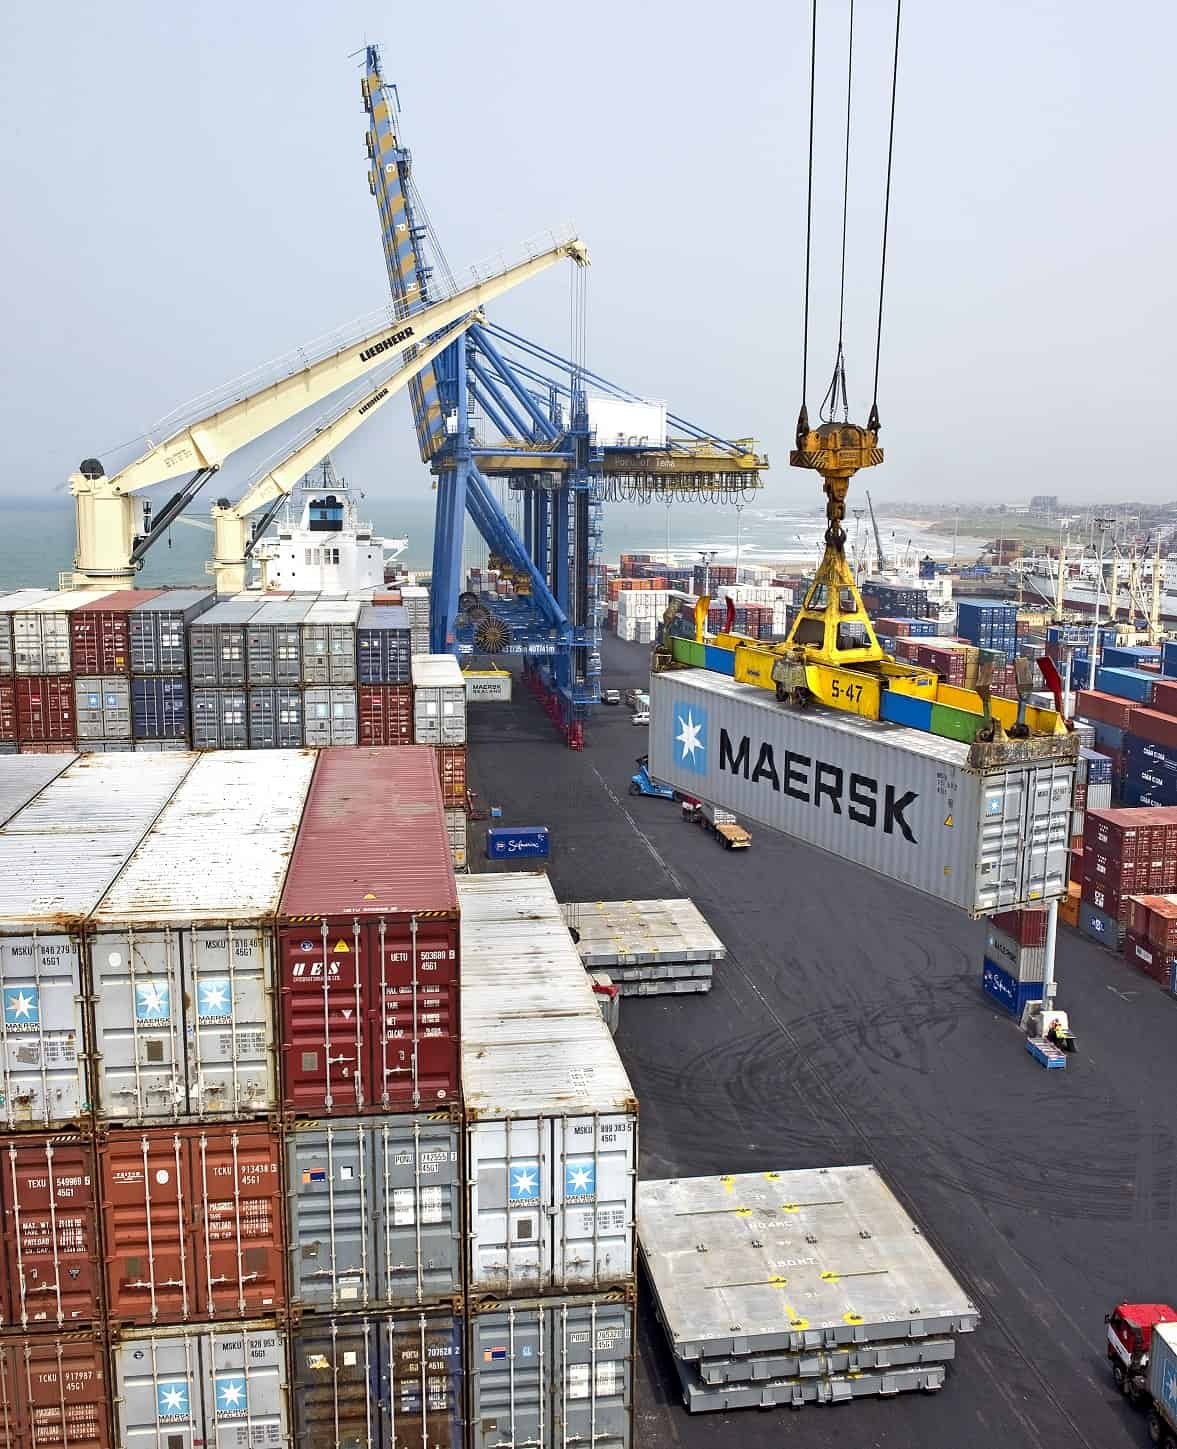 Maersk's profit slashed amid low freight rates